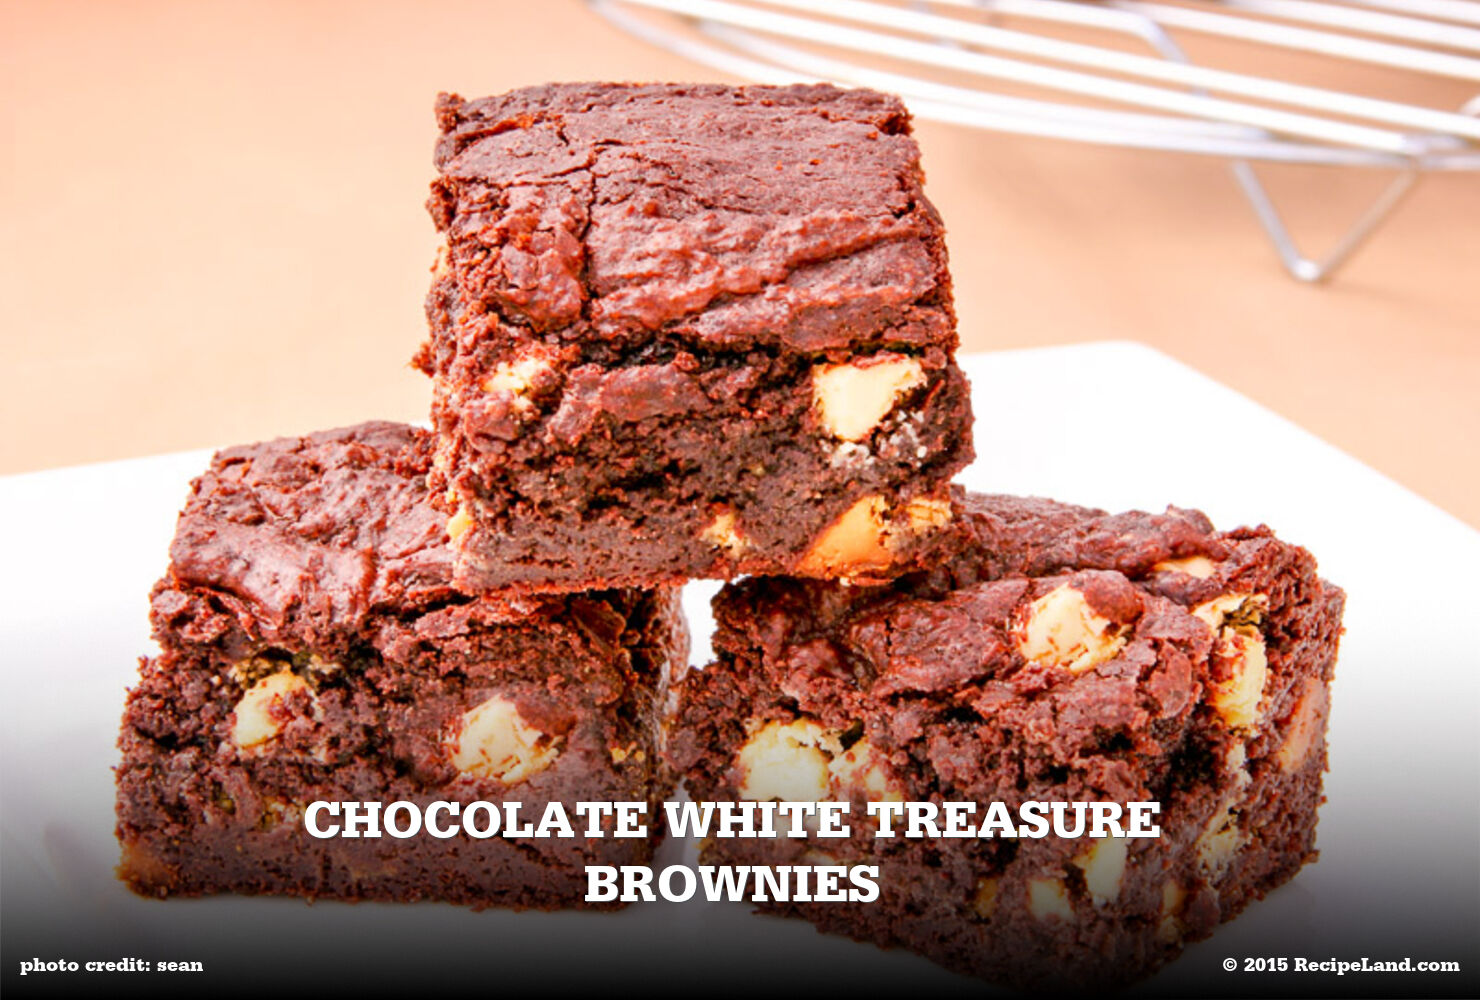 Chocolate White Treasure Brownies